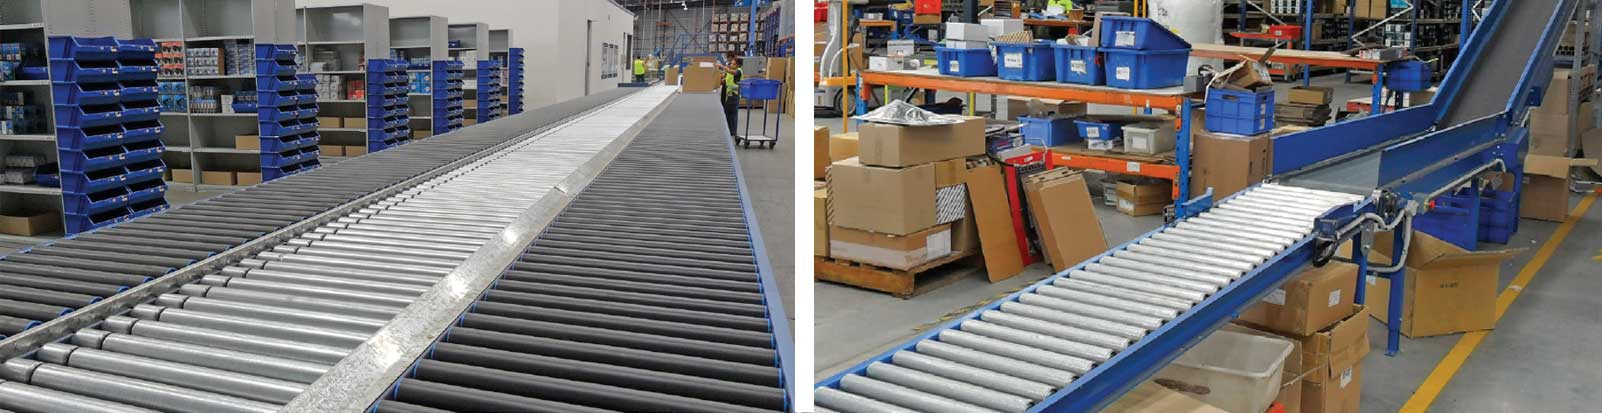 Gravity conveyor packages - application